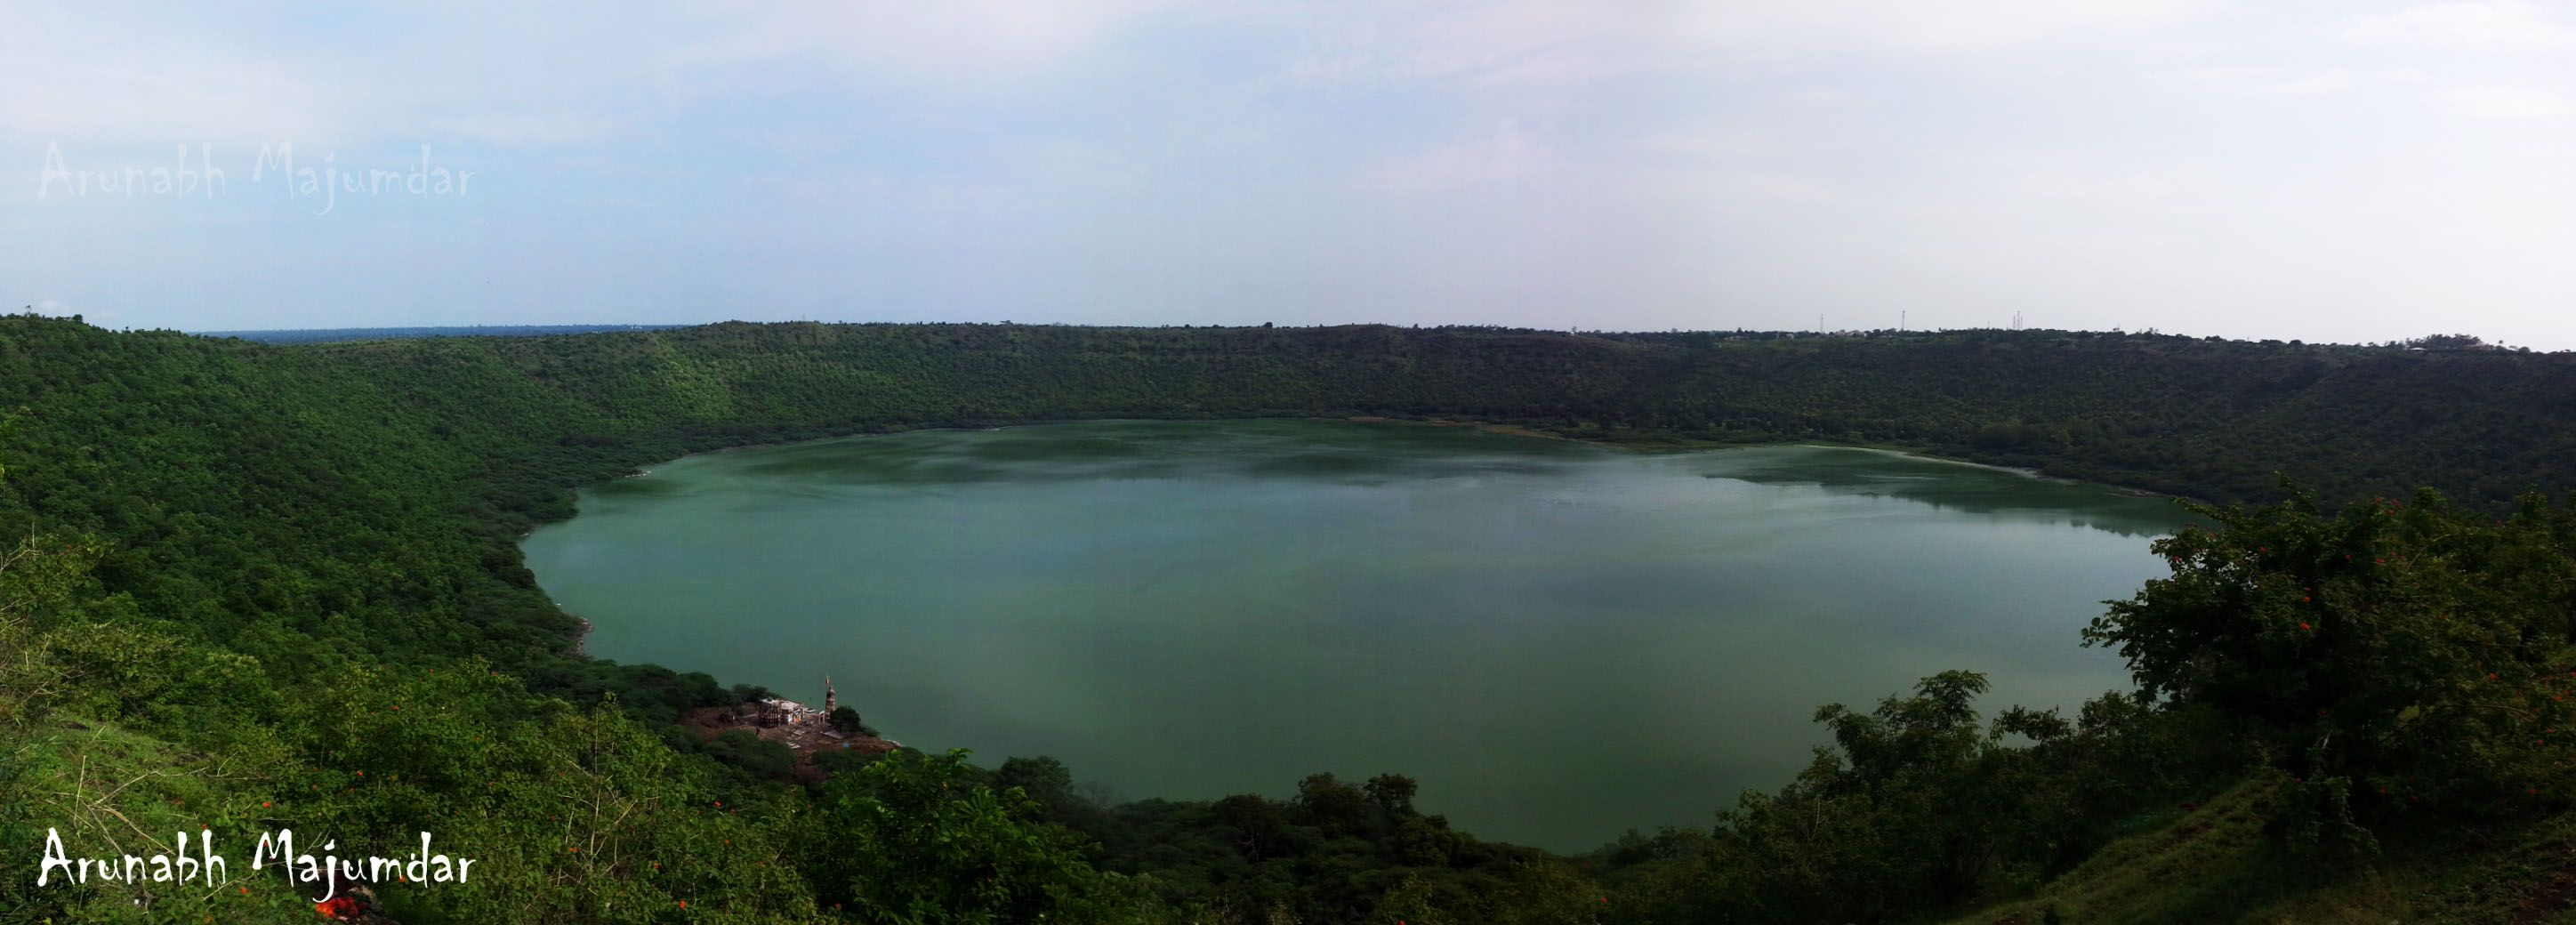 Lonar-Travelling to India's only Meteorite Lake #travel #Nature #Brazil